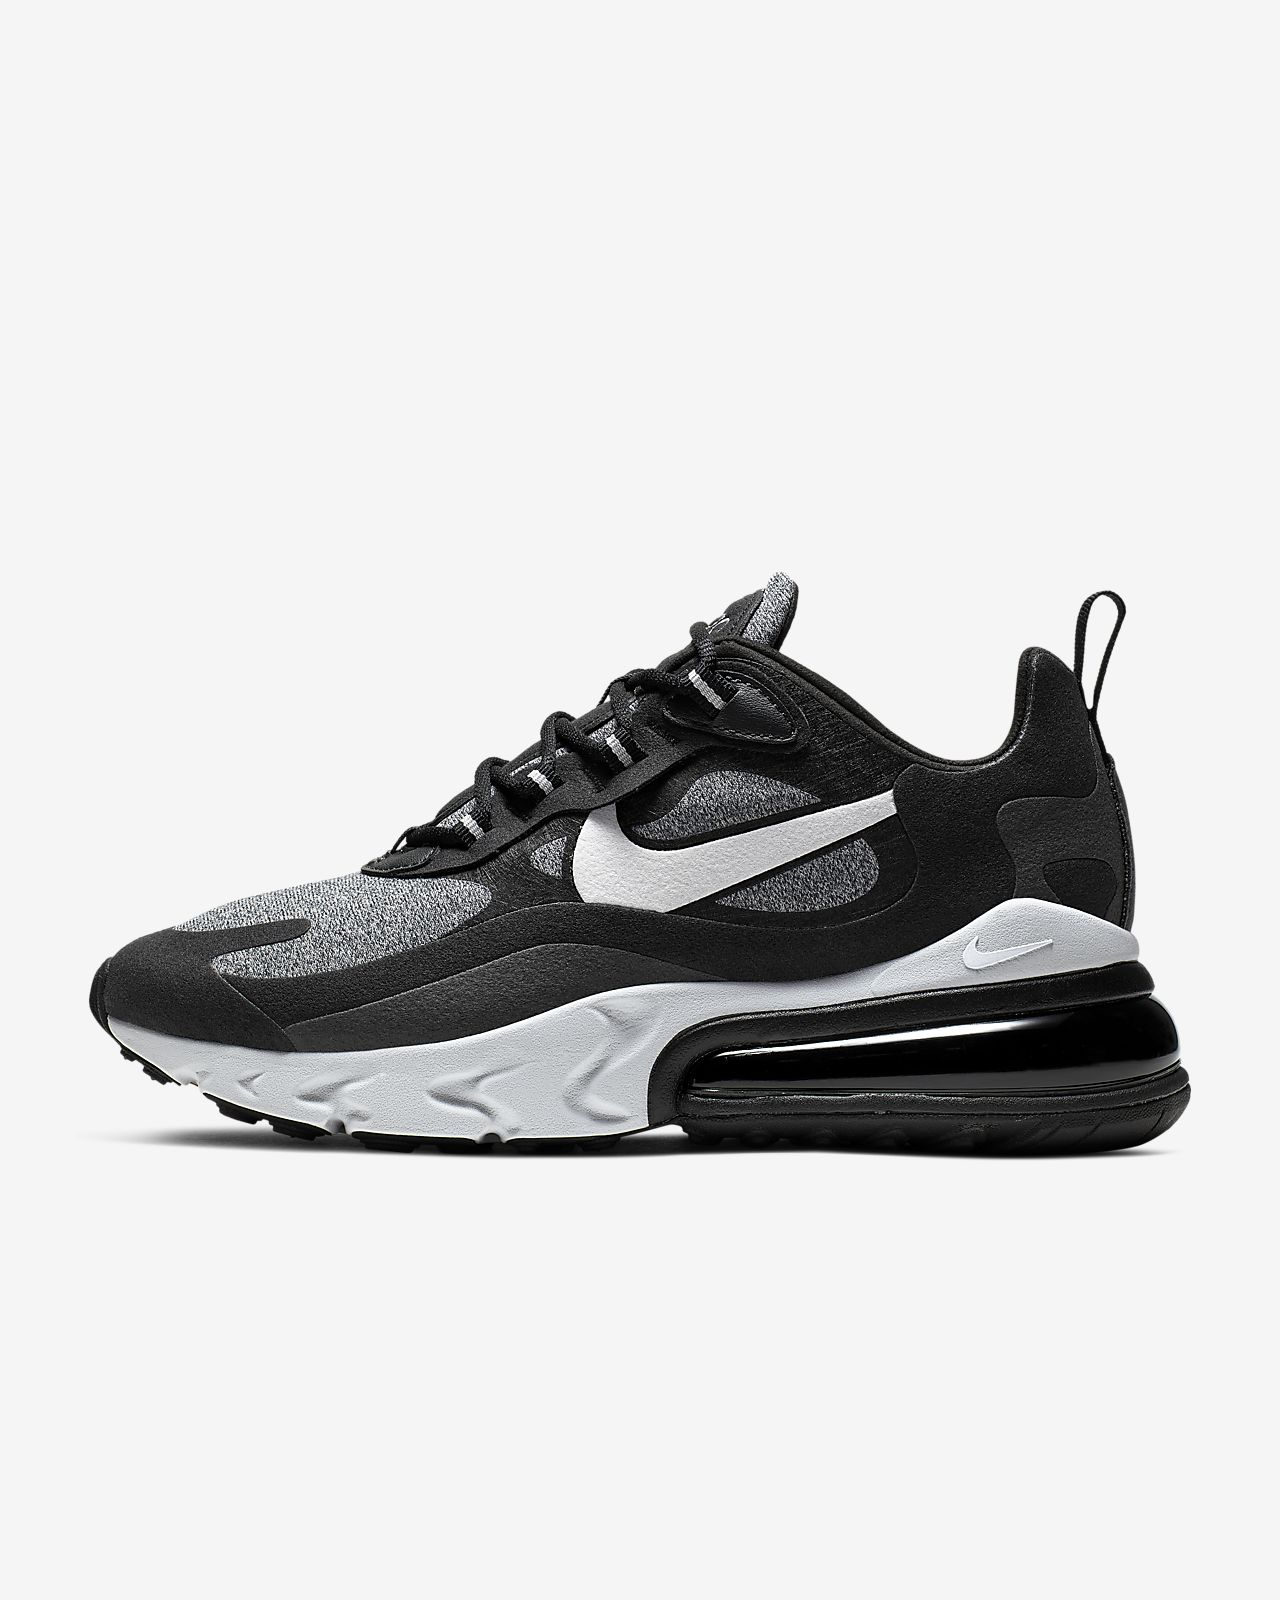 Nike Air Max 270 React (Optical) Damenschuh